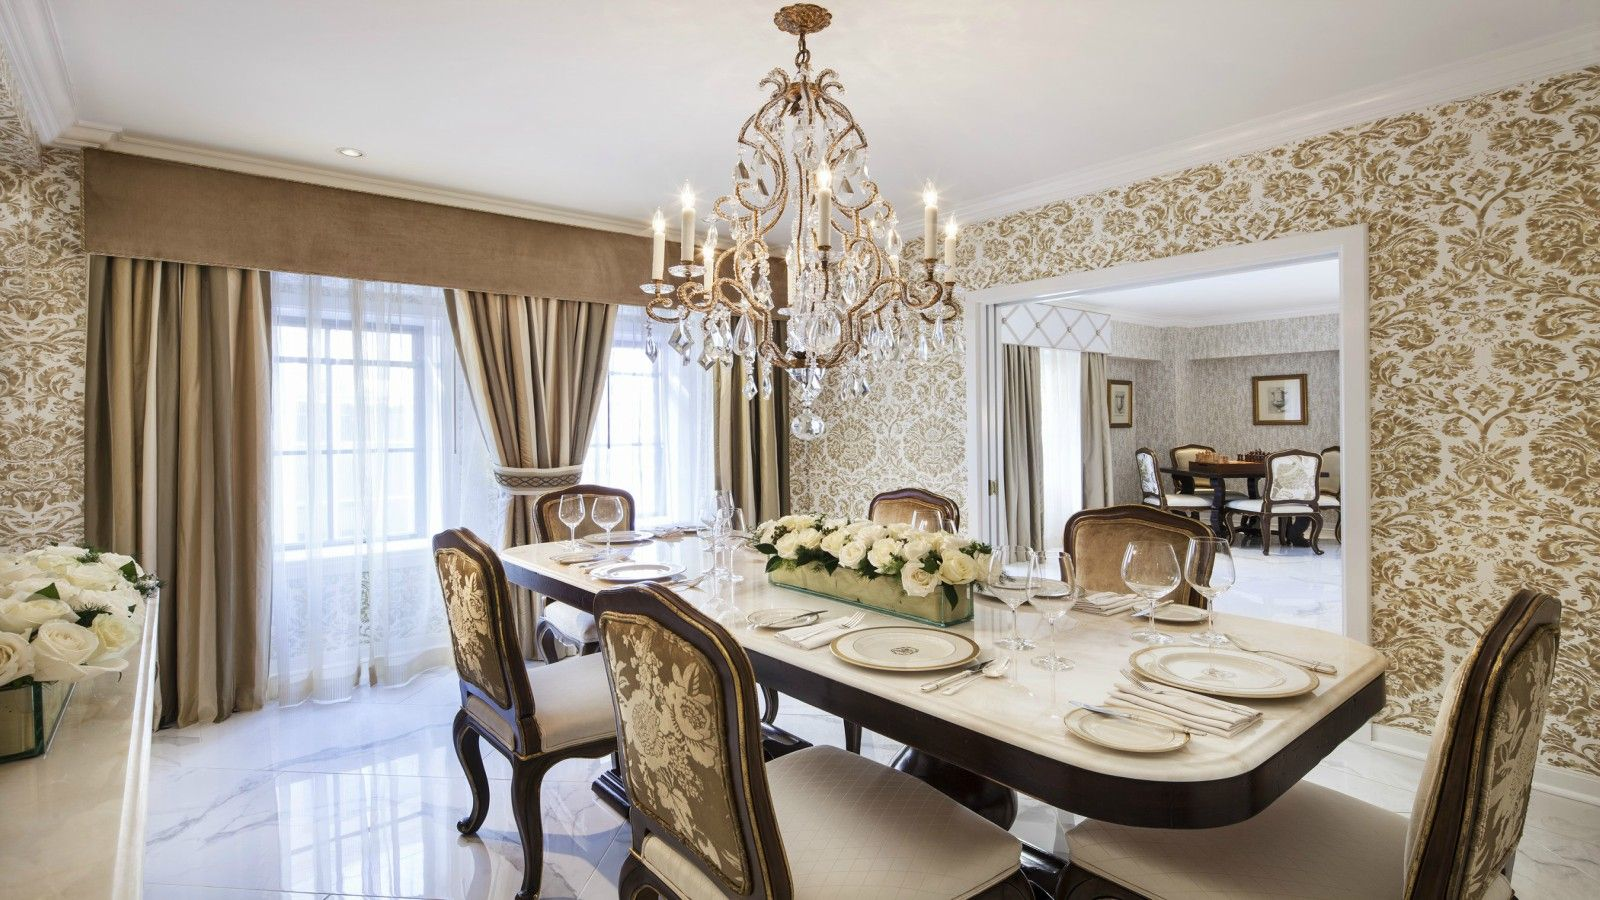 The St. Regis Washington, D.C. - Presidential Dining Room